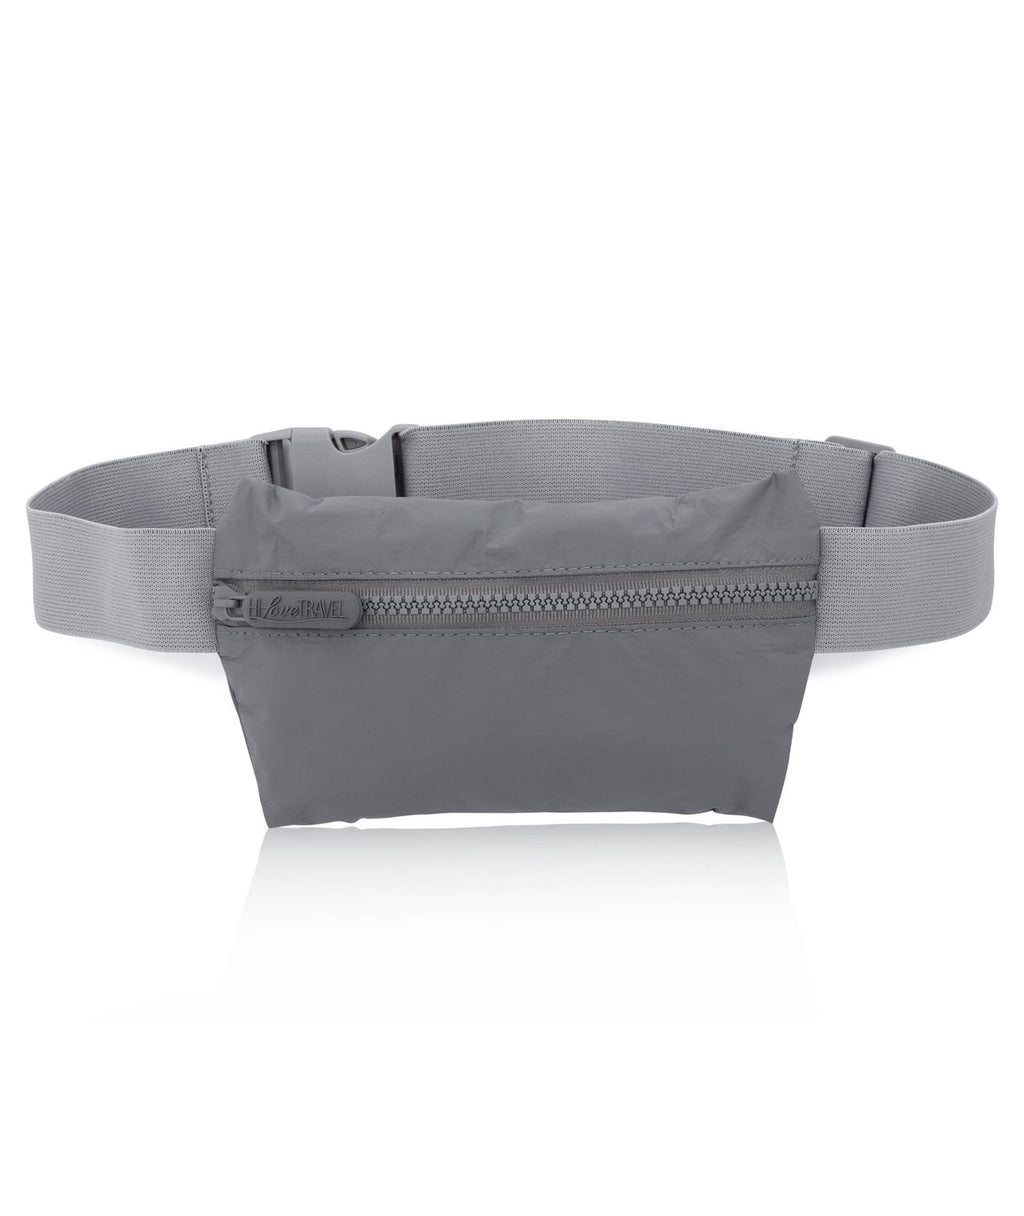 HI Love Travel Invisible Pack Space Gray